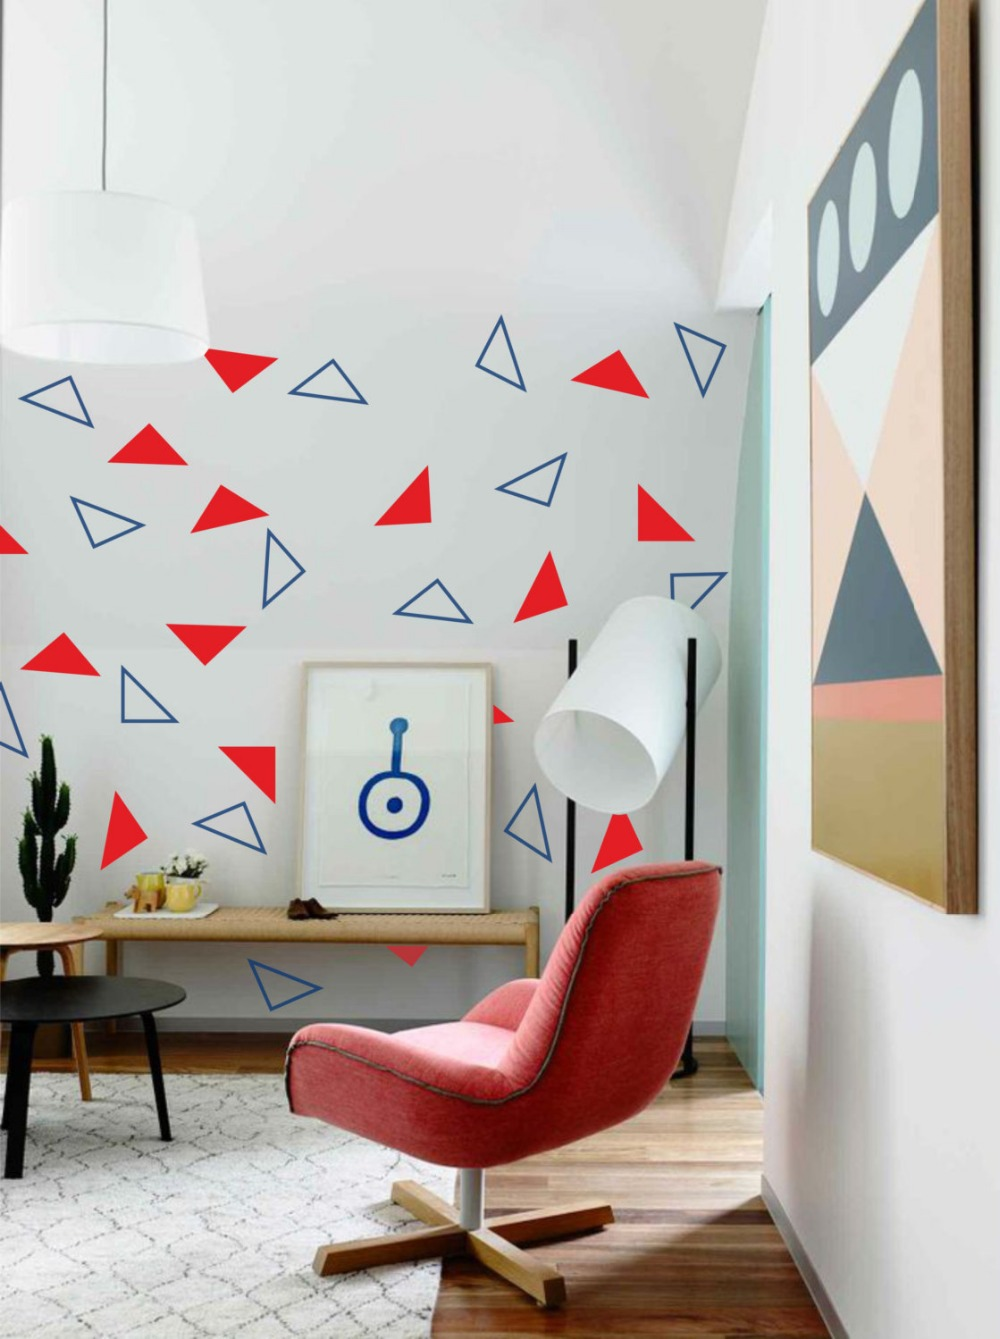 fashion 96pcs(48solid and 48hollow) Triangles vinyl, Abstract geometric wall  art - removable wall decal,home decor sticker(